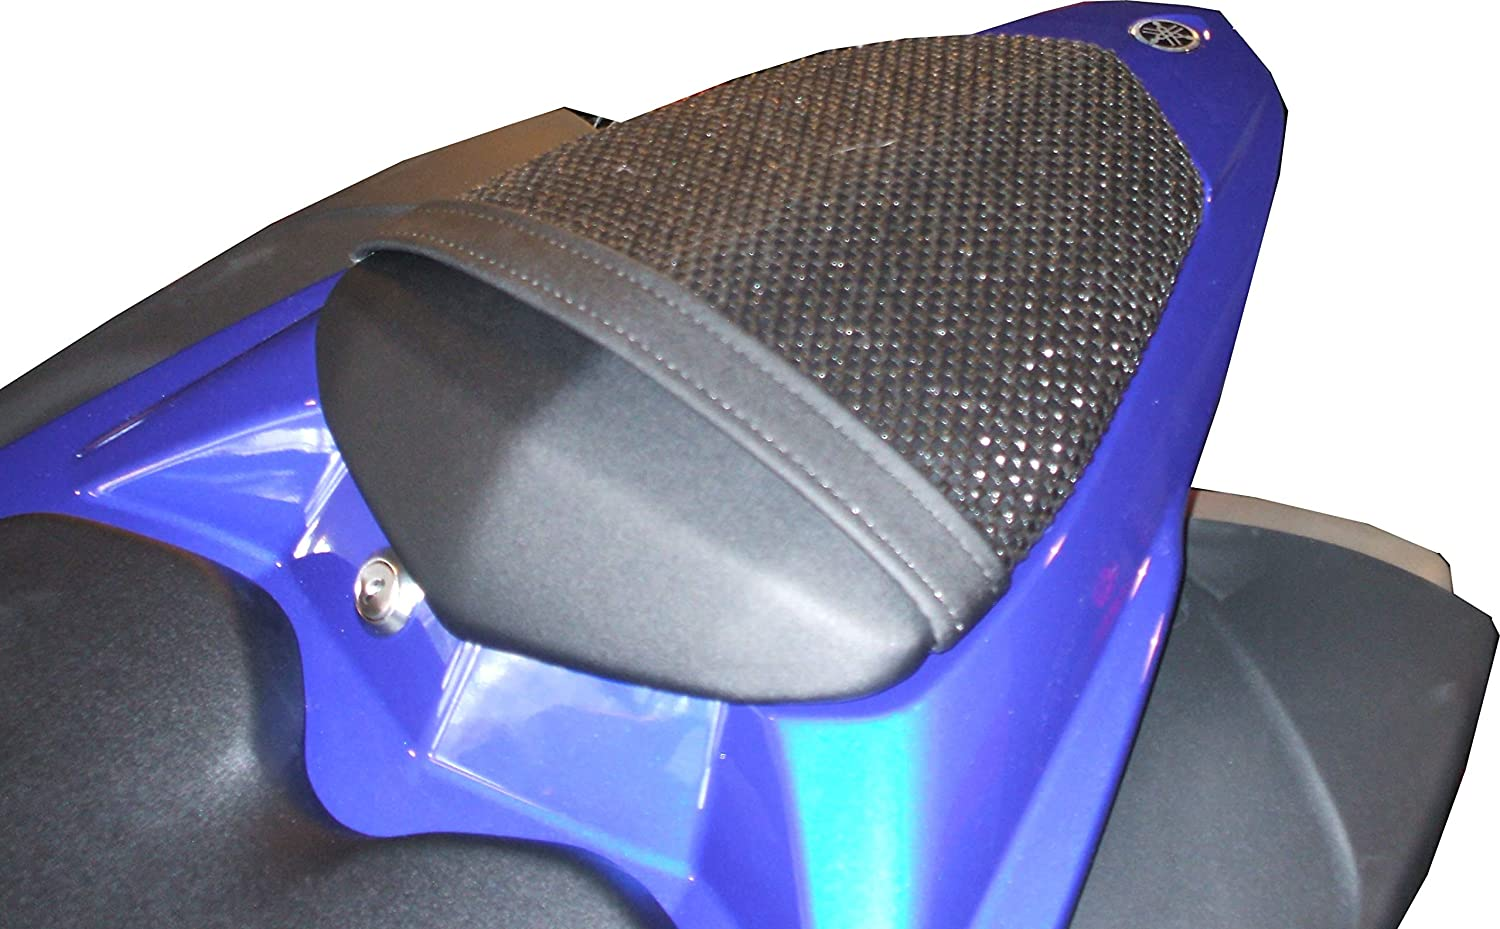 YAMAHA YZF R1 (2009-2014) TRIBOSEAT COPRISELLA PASSEGGERO ANTISCIVOLO NERO ADVANCED SEATING TECHNOLOGY LIMITED